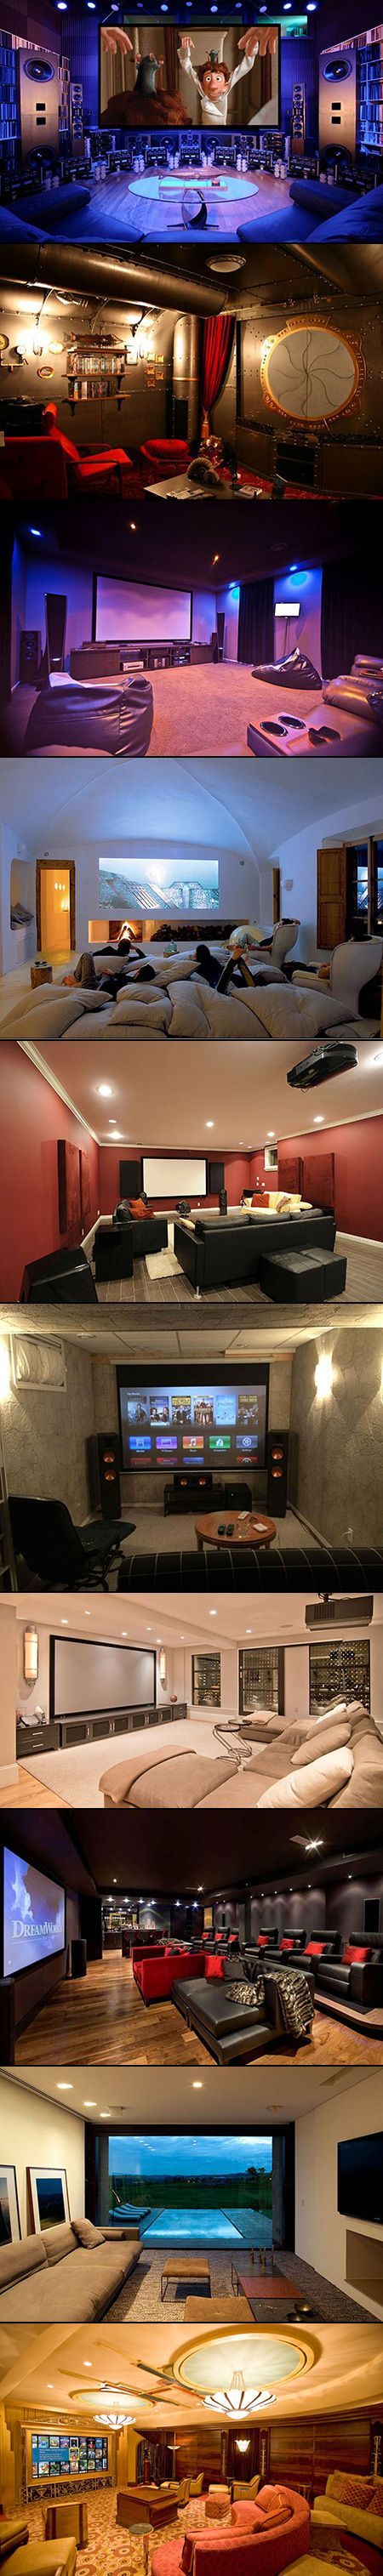 10 Incredible Home Theaters That Geeks Would Love These Could Also Make Great Gaming Rooms